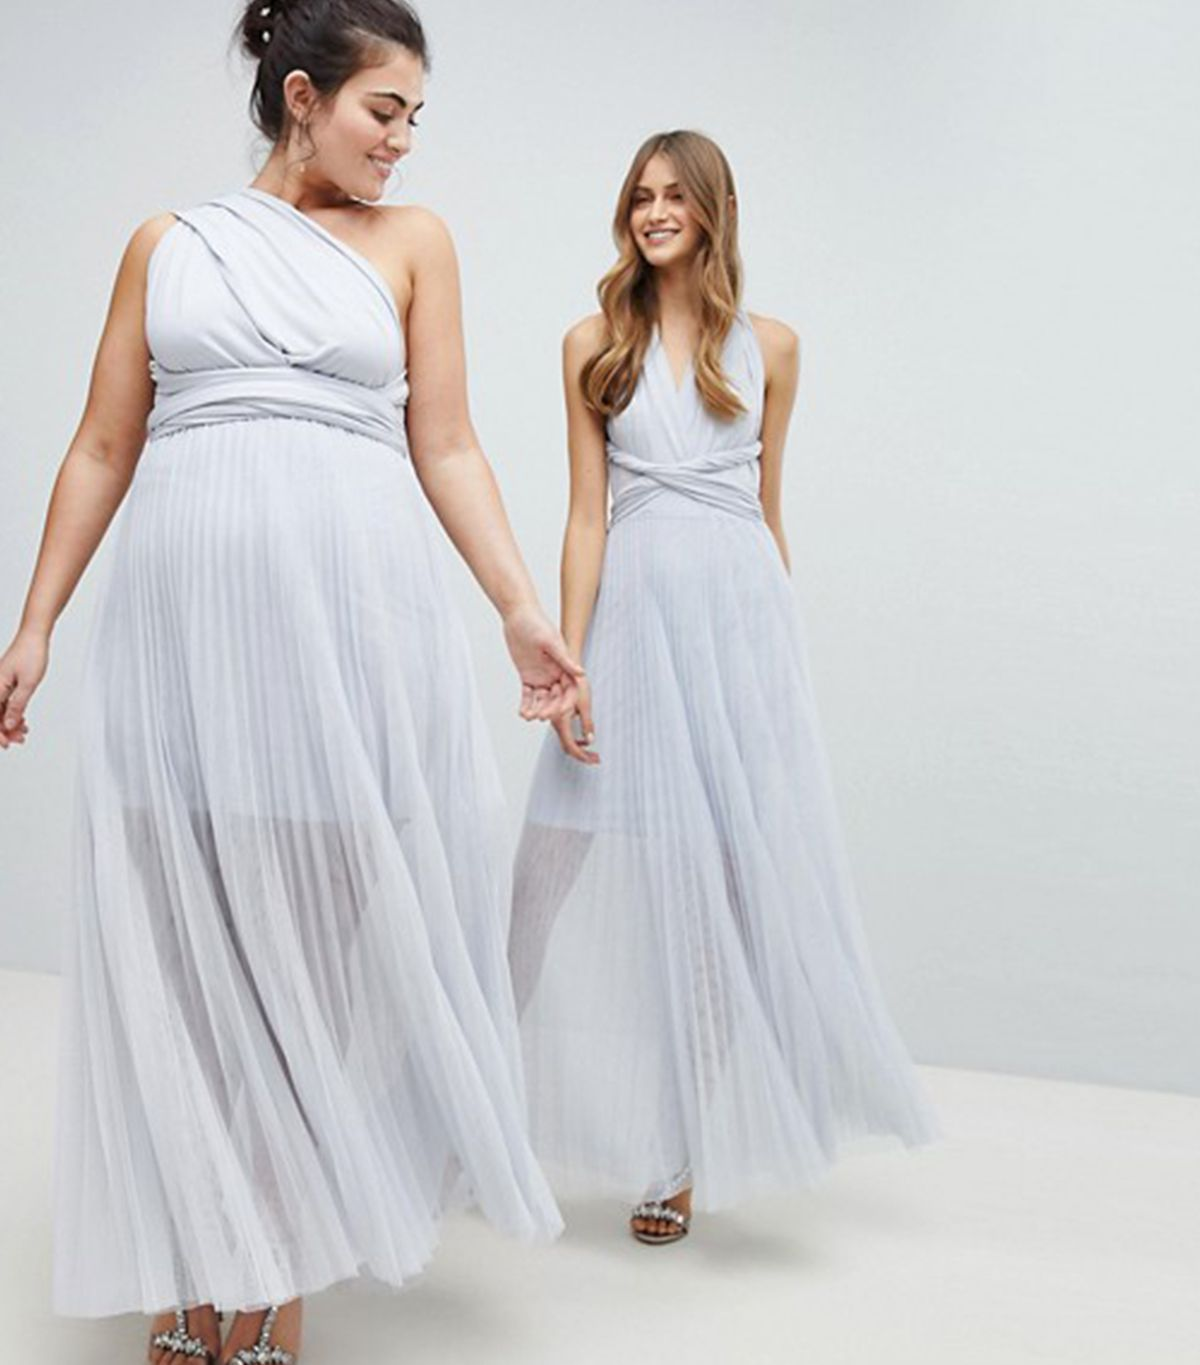 Bridesmaid dresses you can wear different ways gallery the prettiest bridesmaid dresses for a country style wedding the twisted ties are meant to be ombrellifo Image collections